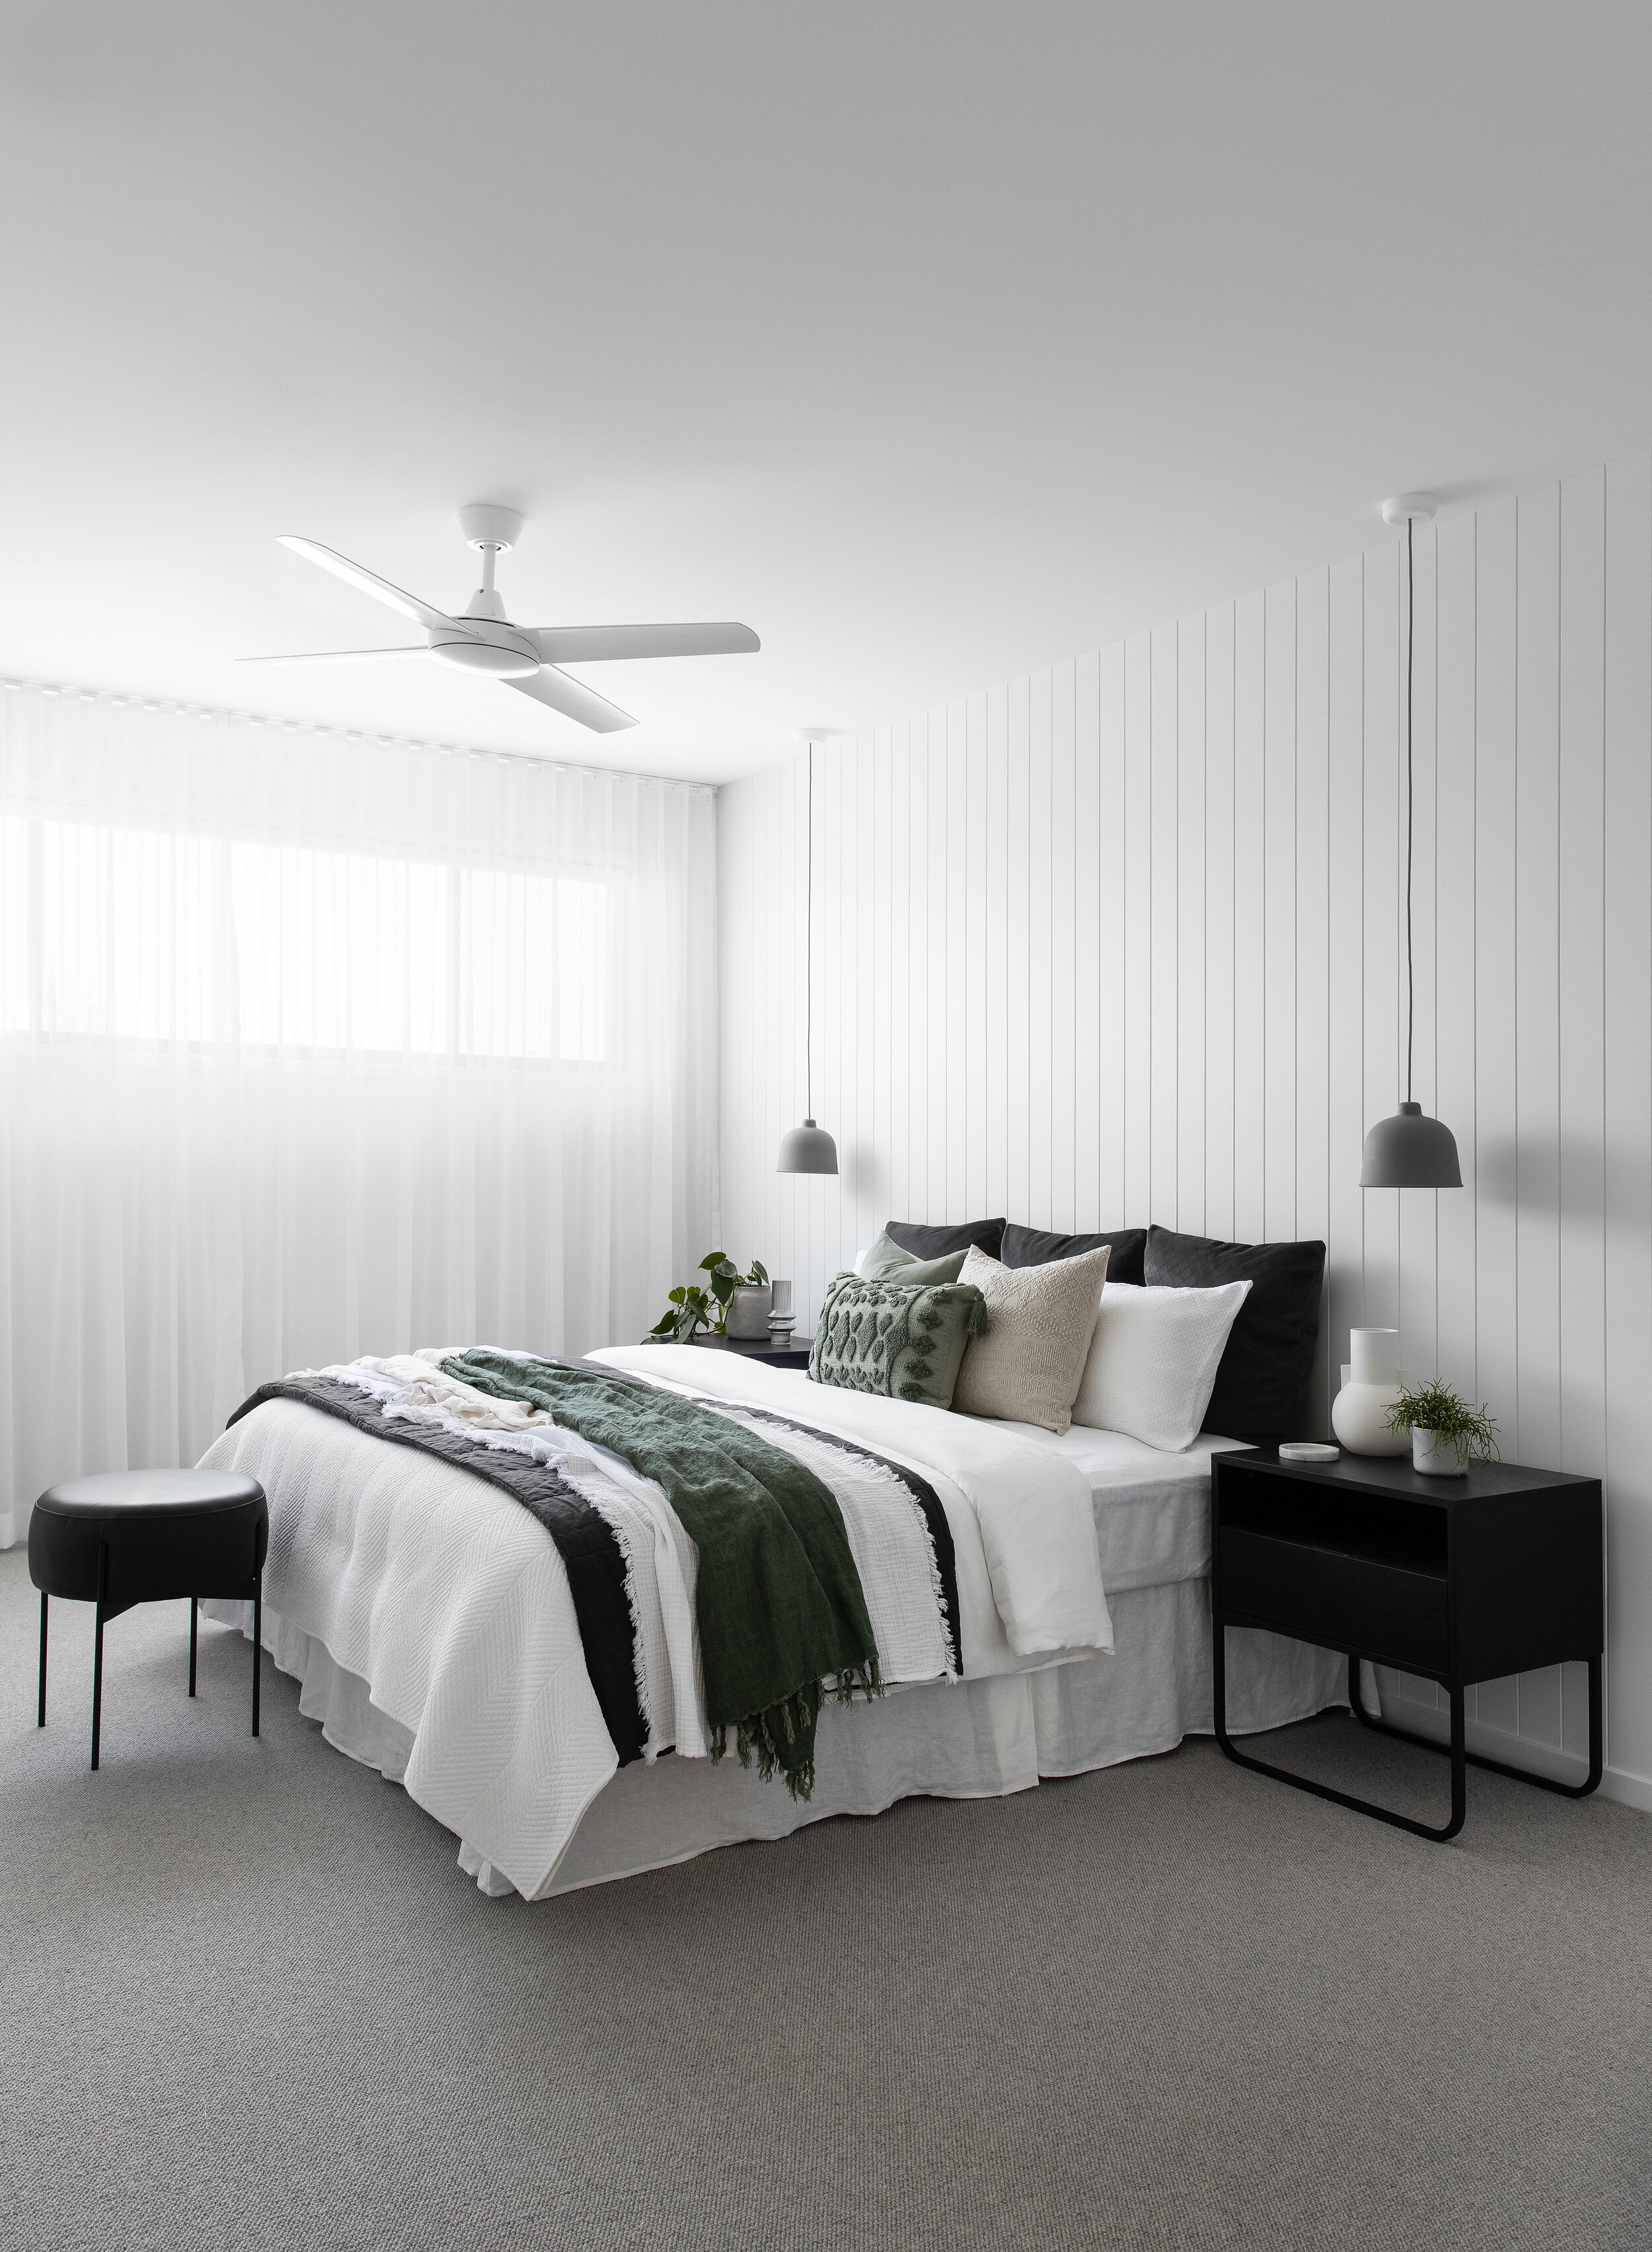 What Size Ceiling Fan Do You Need For Your Room Zephyr Stone